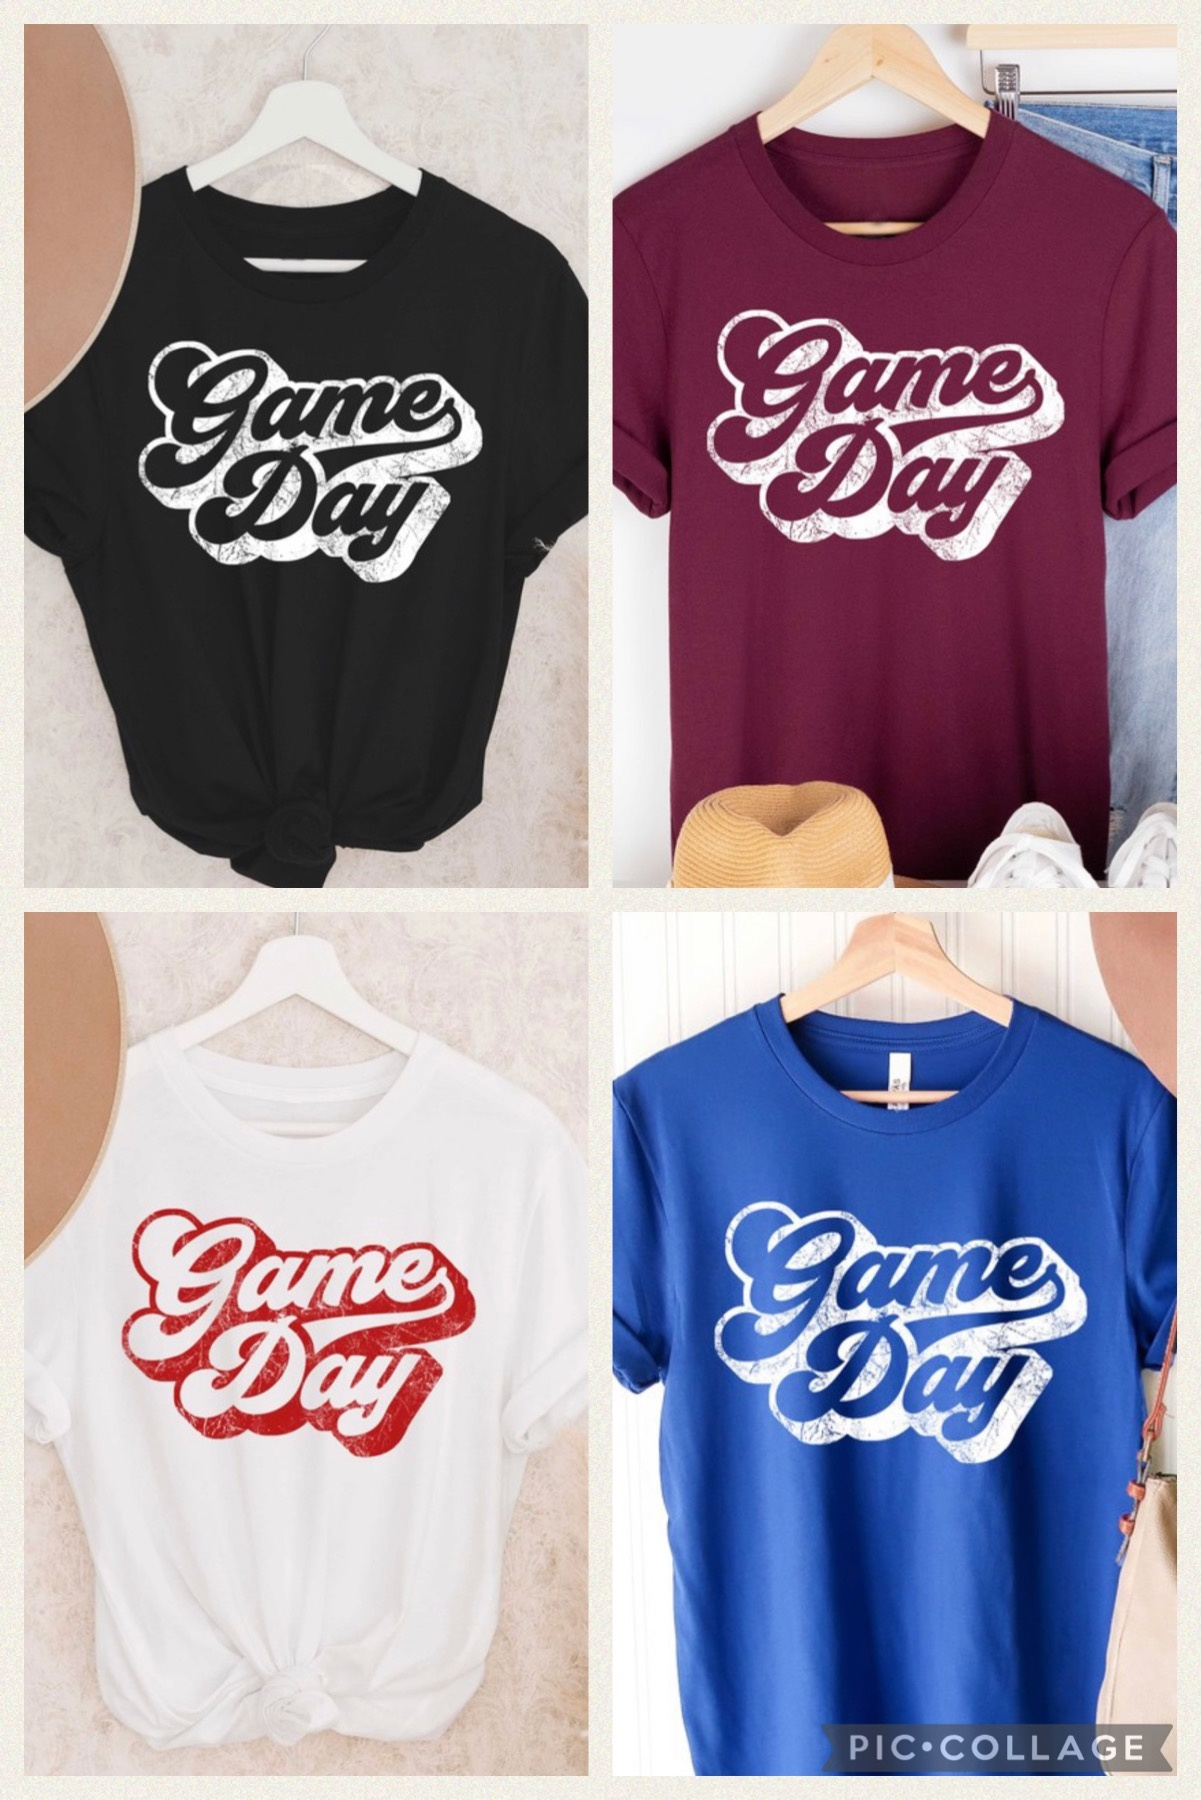 Game Day T-Shirts